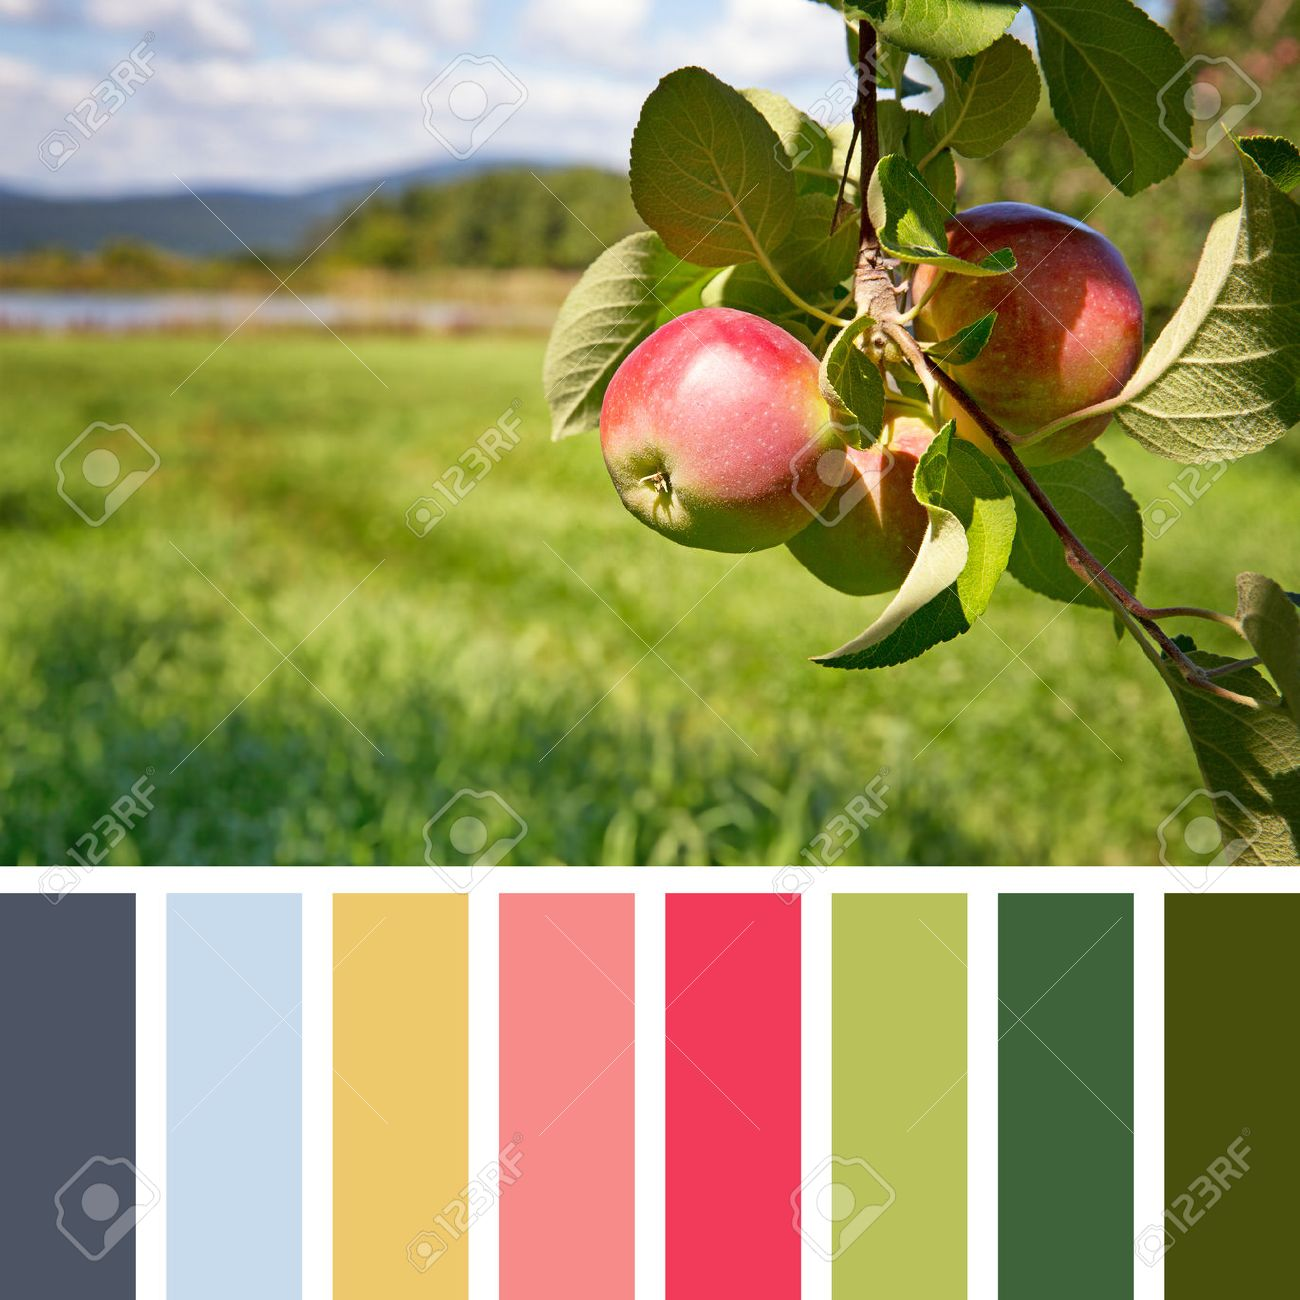 Ripe Apples Hanging From A Tree In An Orchard, In A Colour Palette ...